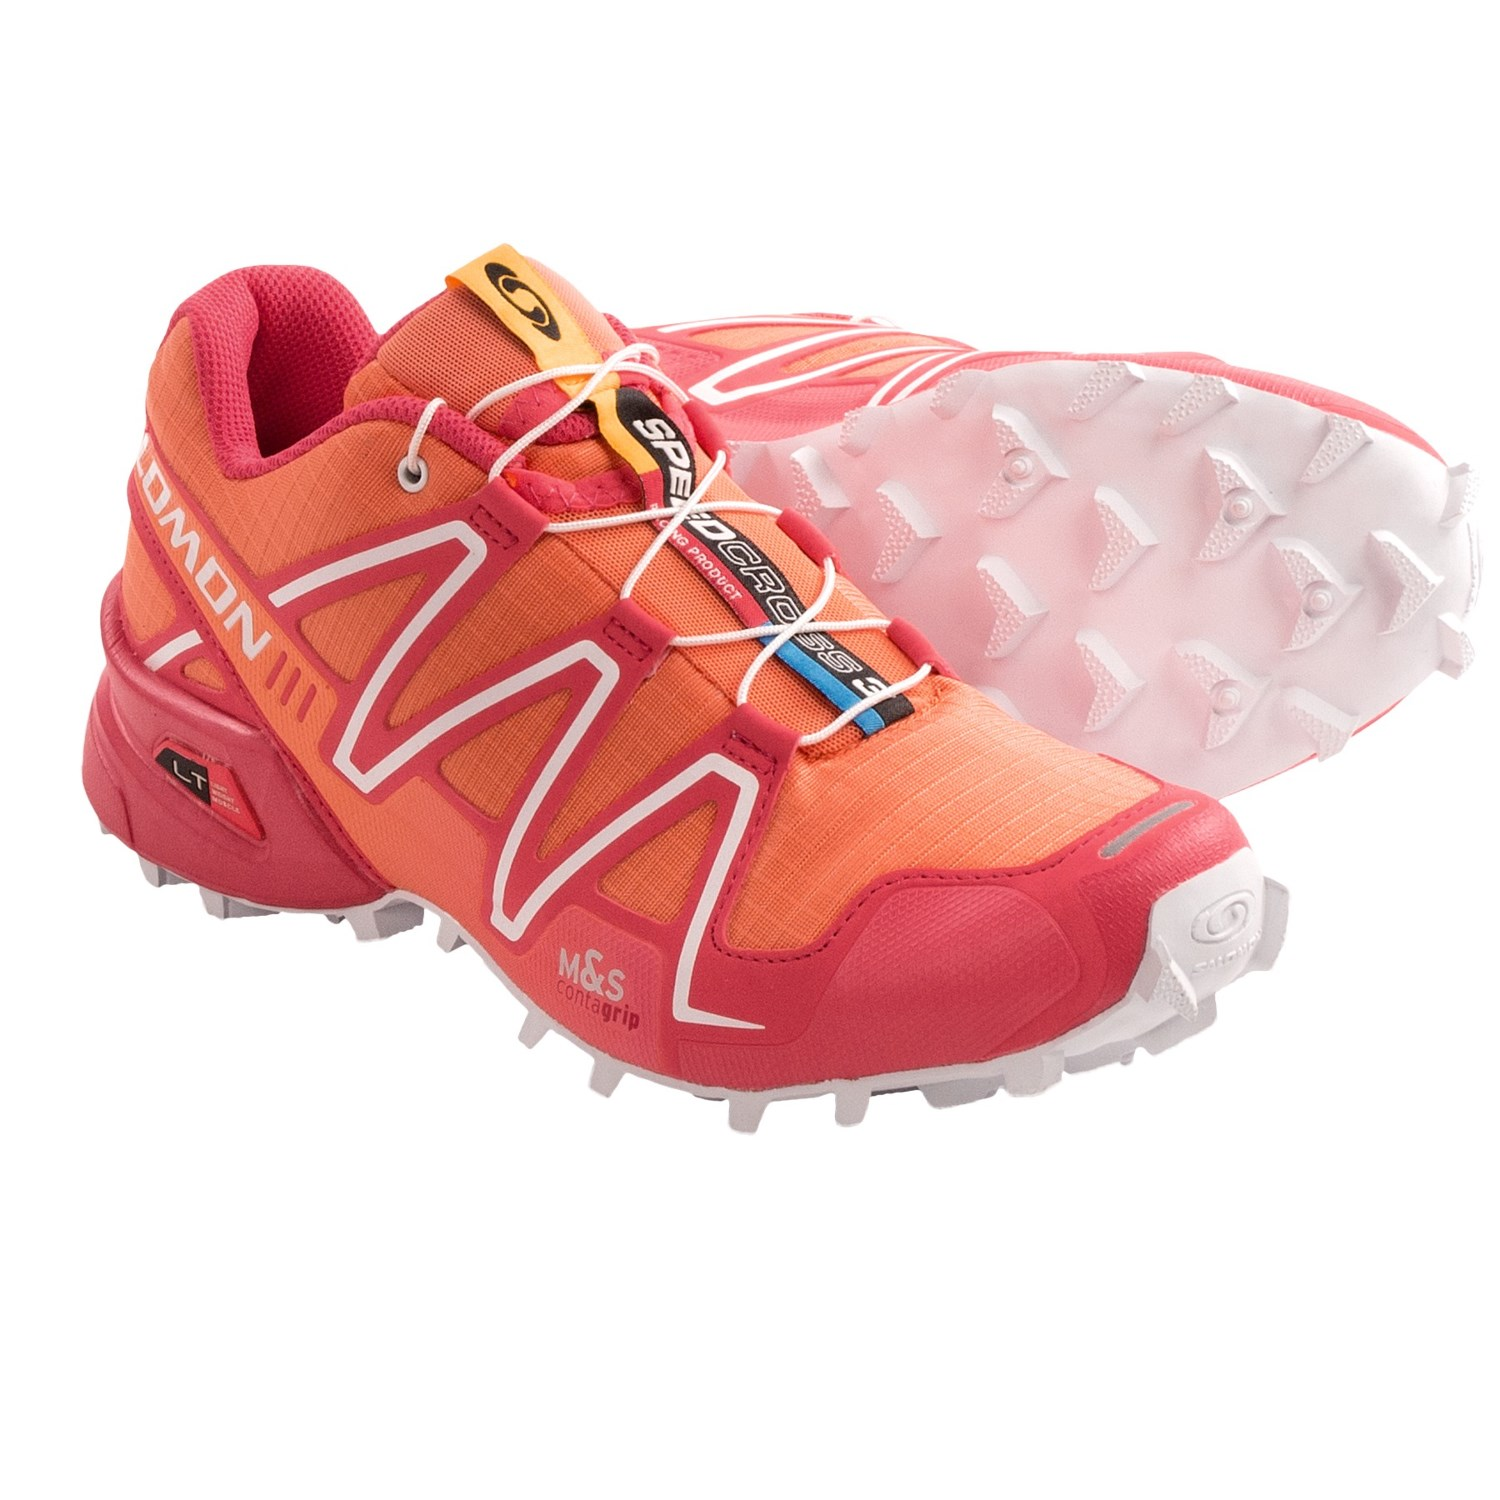 SALOMON Women's XR Mission Trail Running Shoes - image 4 from the video